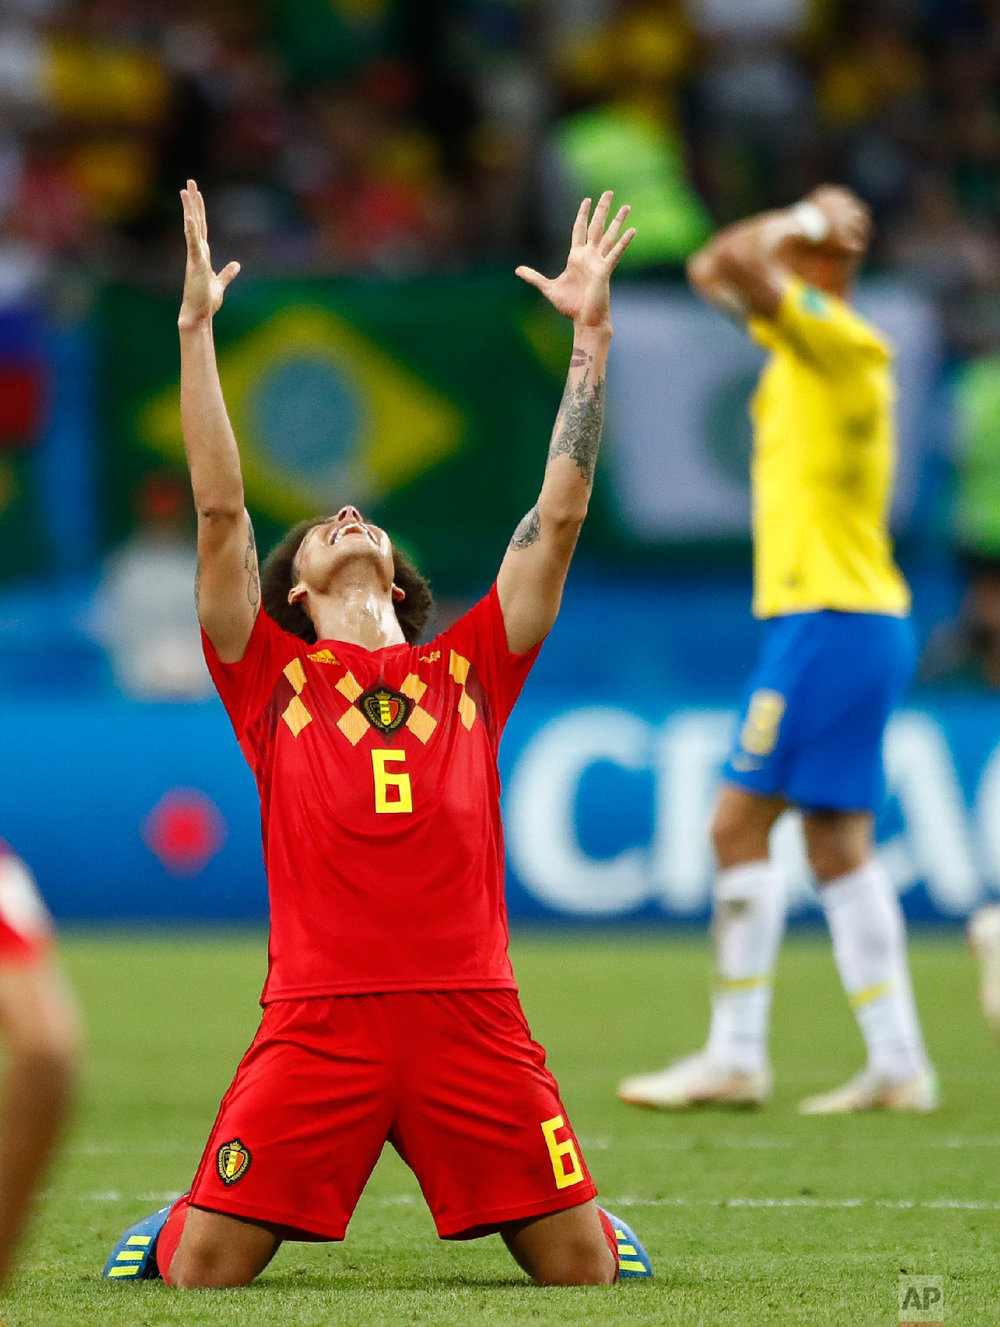 Belgium's Axel Witsel, centre celebrates after the final whistle as Belgium defeat Brazil in their quarterfinal match between Brazil and Belgium at the 2018 soccer World Cup in the Kazan Arena, in Kazan, Russia on July 6, 2018. (AP Photo/Matthias Schrader, File)